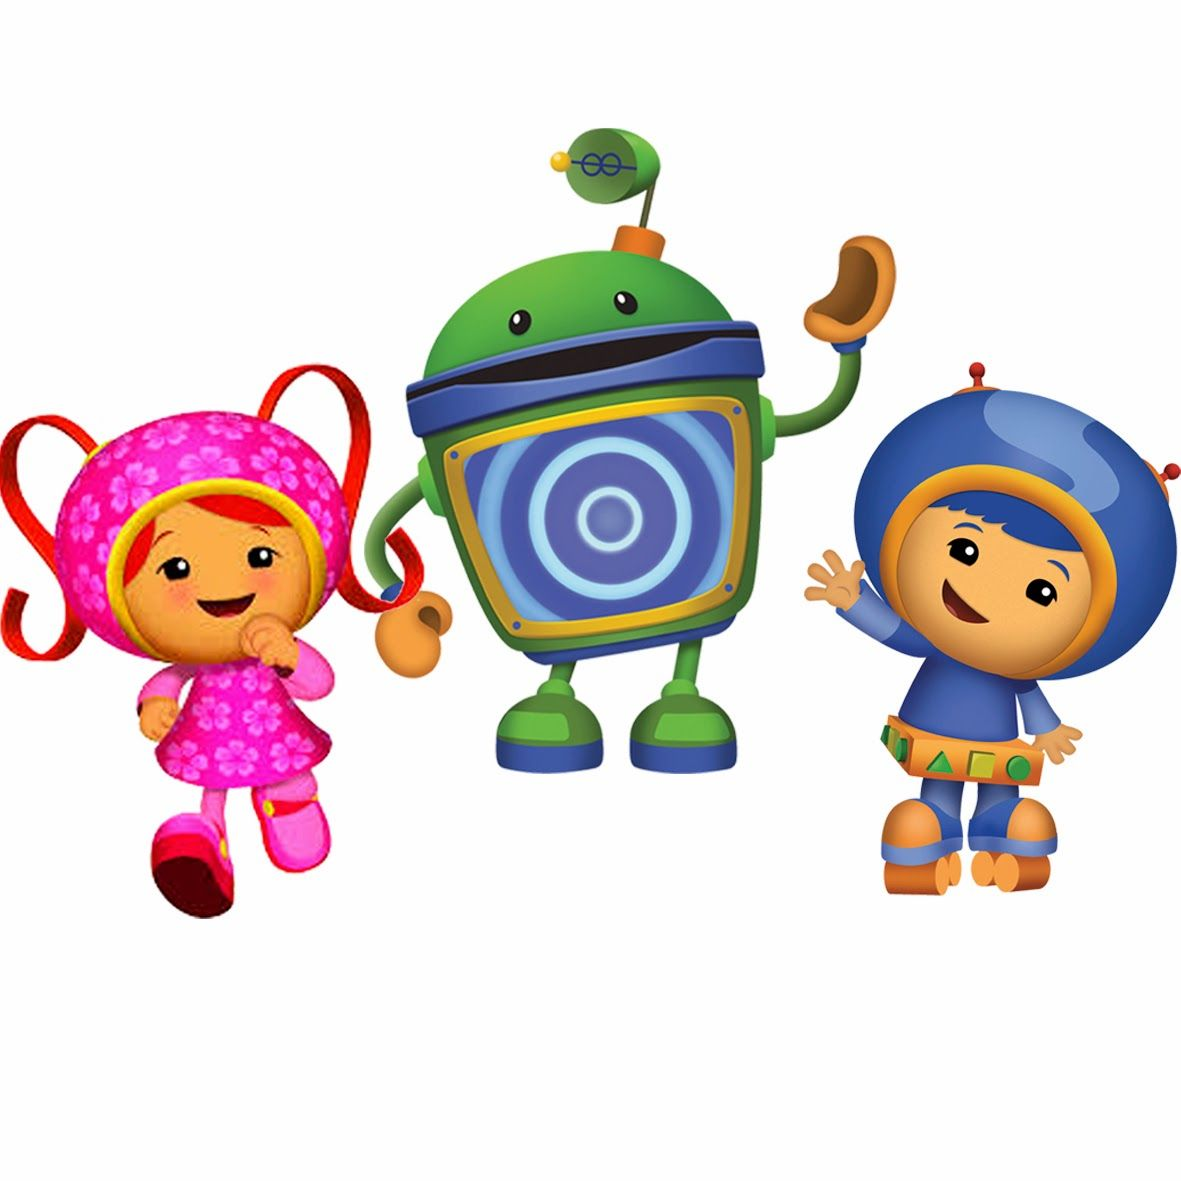 22nd Birthday Bash Abby And Brittany: Umizoomi: Free Party Printables, Images And Invitations